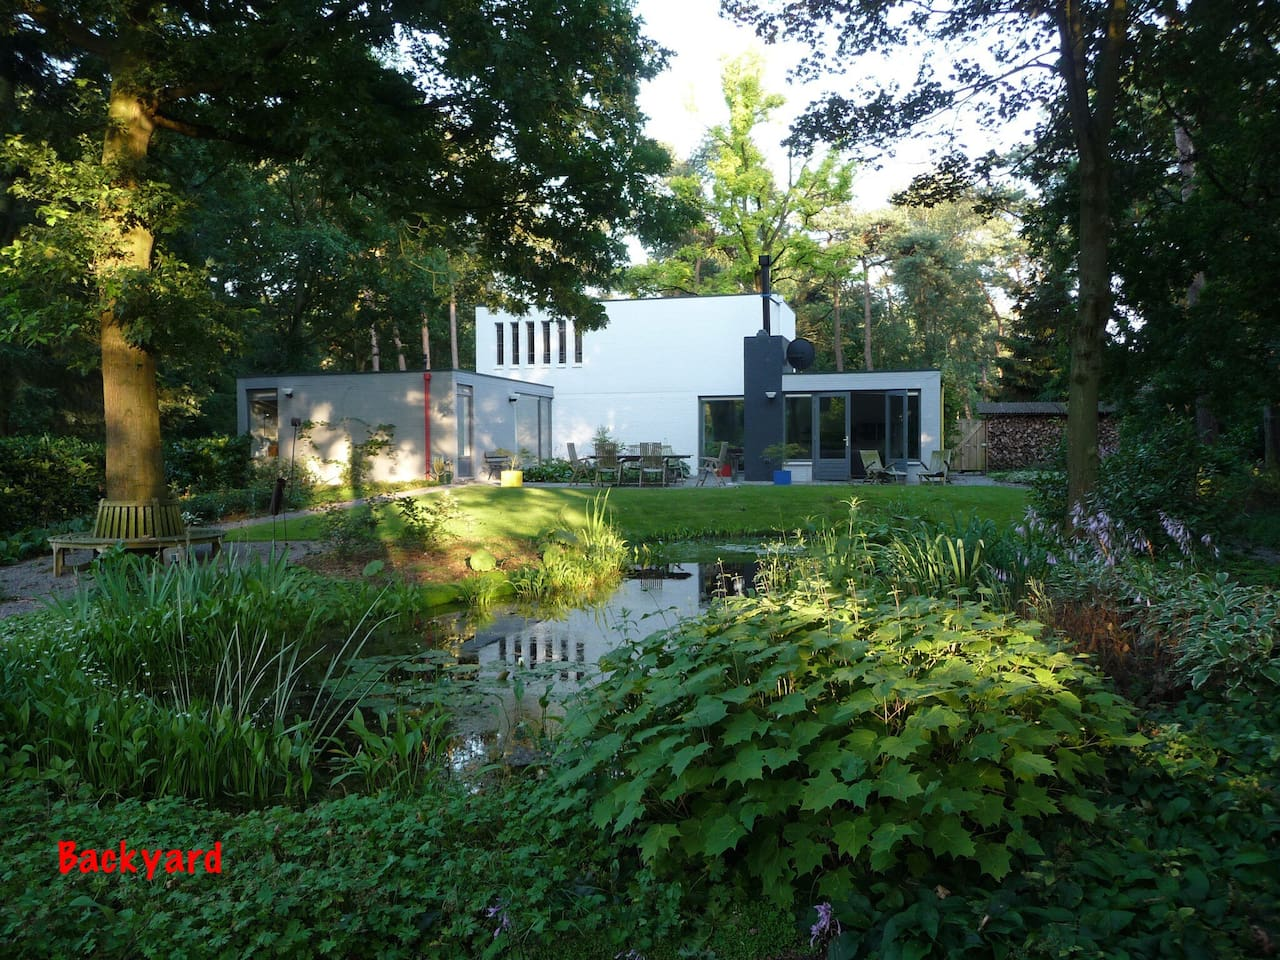 large garden in a wooded area